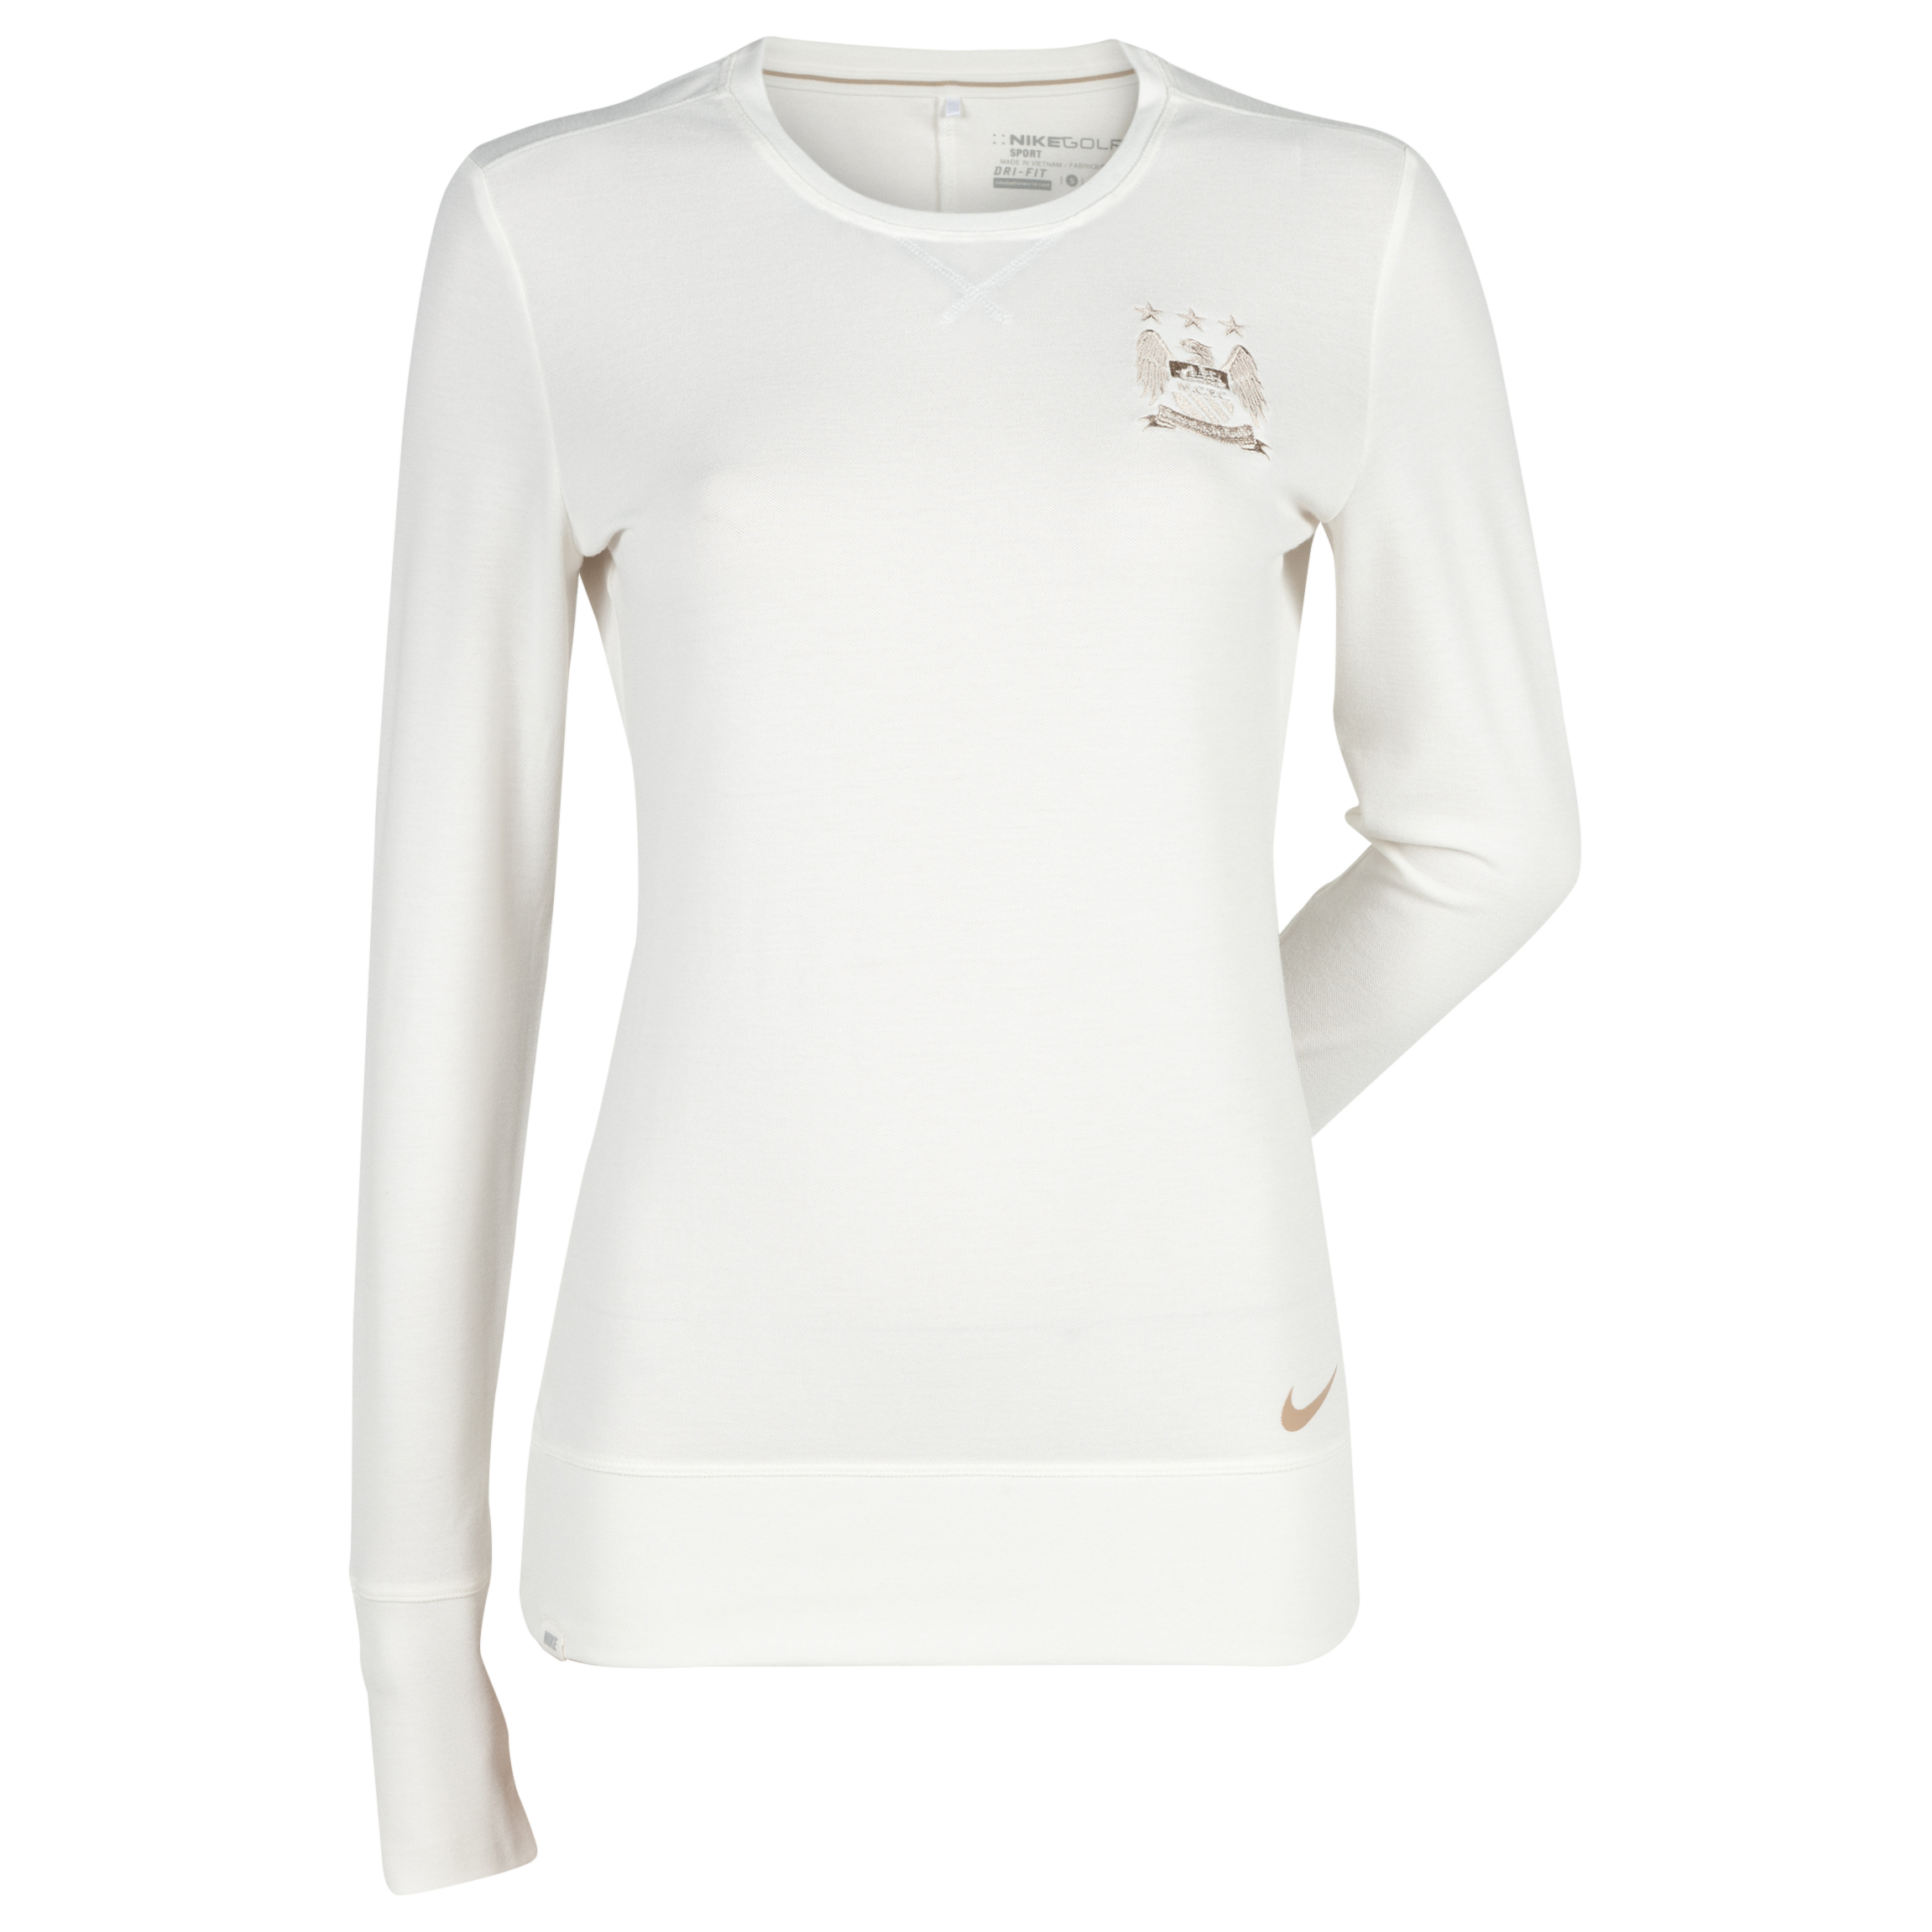 Manchester City Nike Sport Crew T-Shirt - Long Sleeve - Womens White